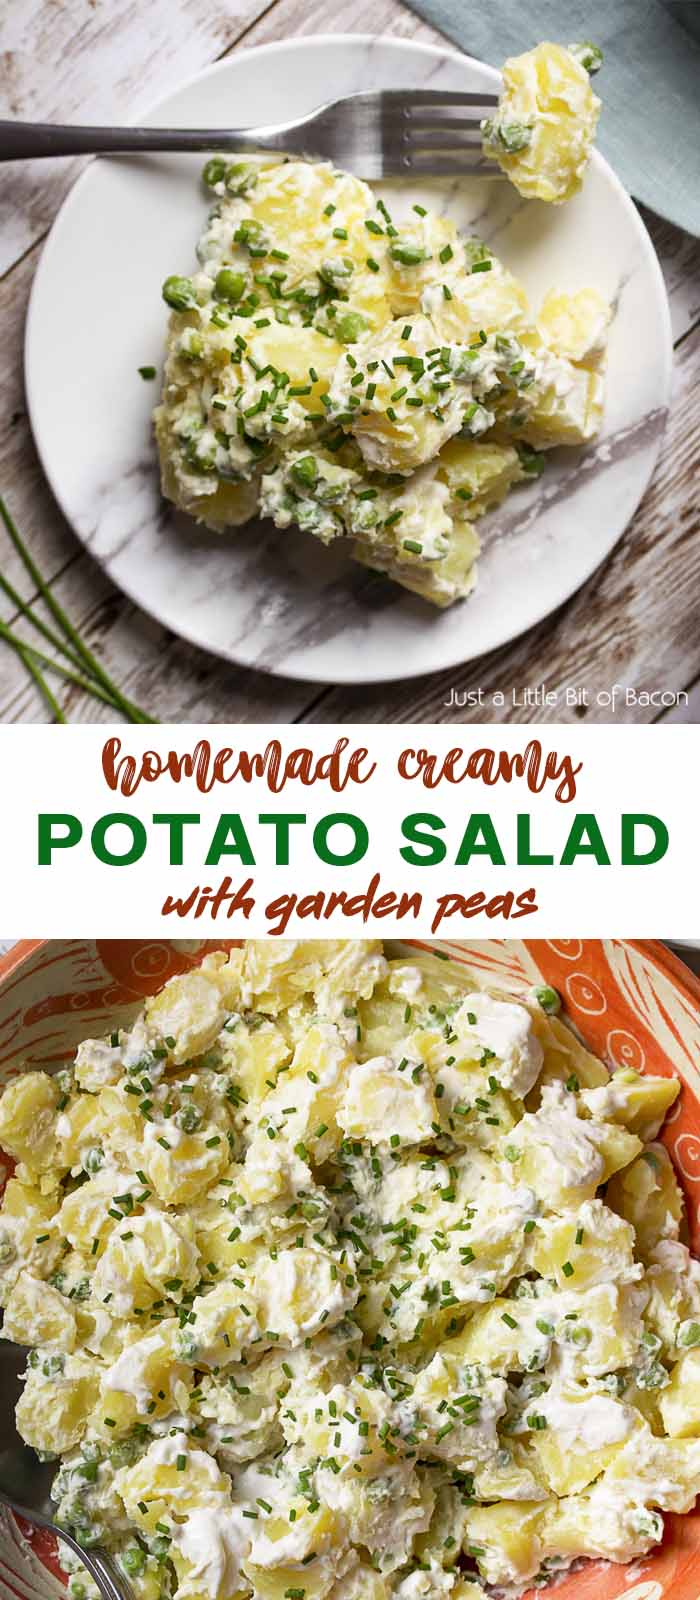 Potato salad on a plate and in a bowl with text overlay - Potato Salad.